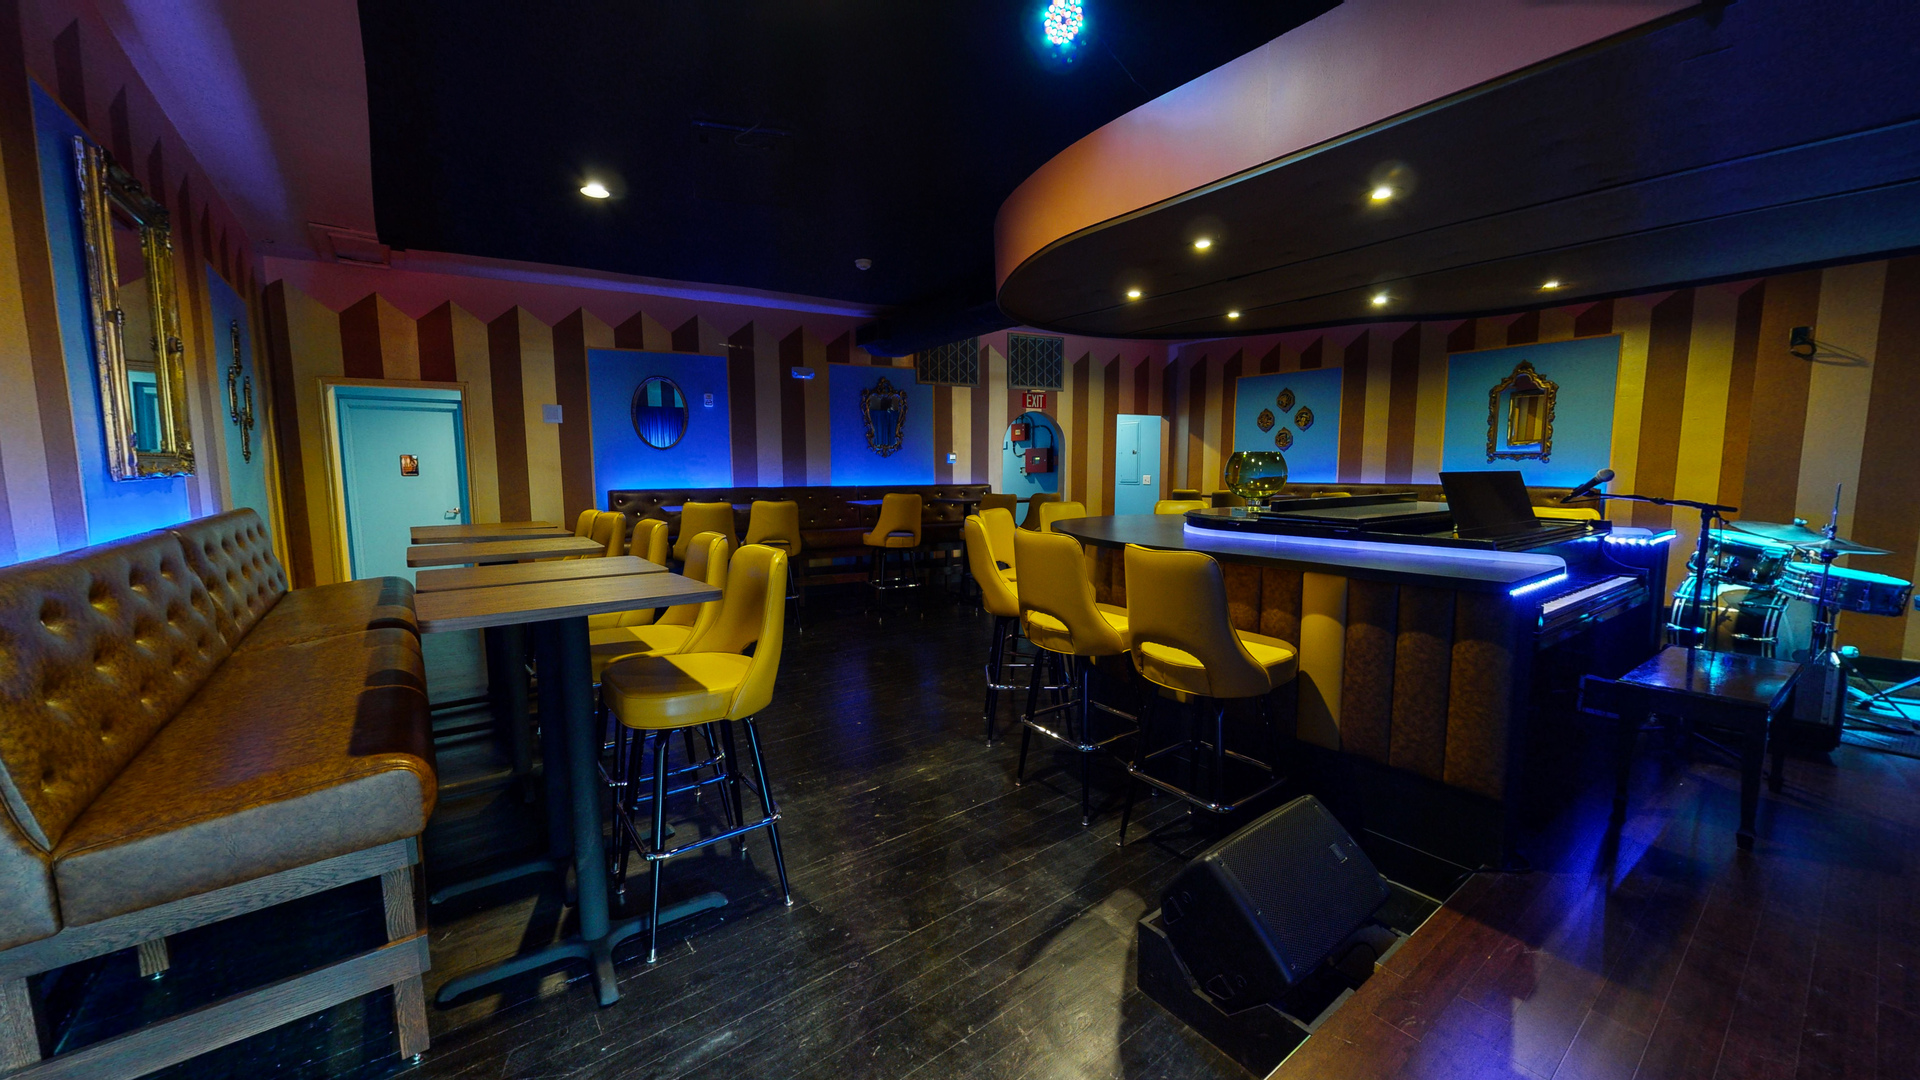 Quaint dining and stage area can be found at the Nashville location of Sid Gold's Request Room. 